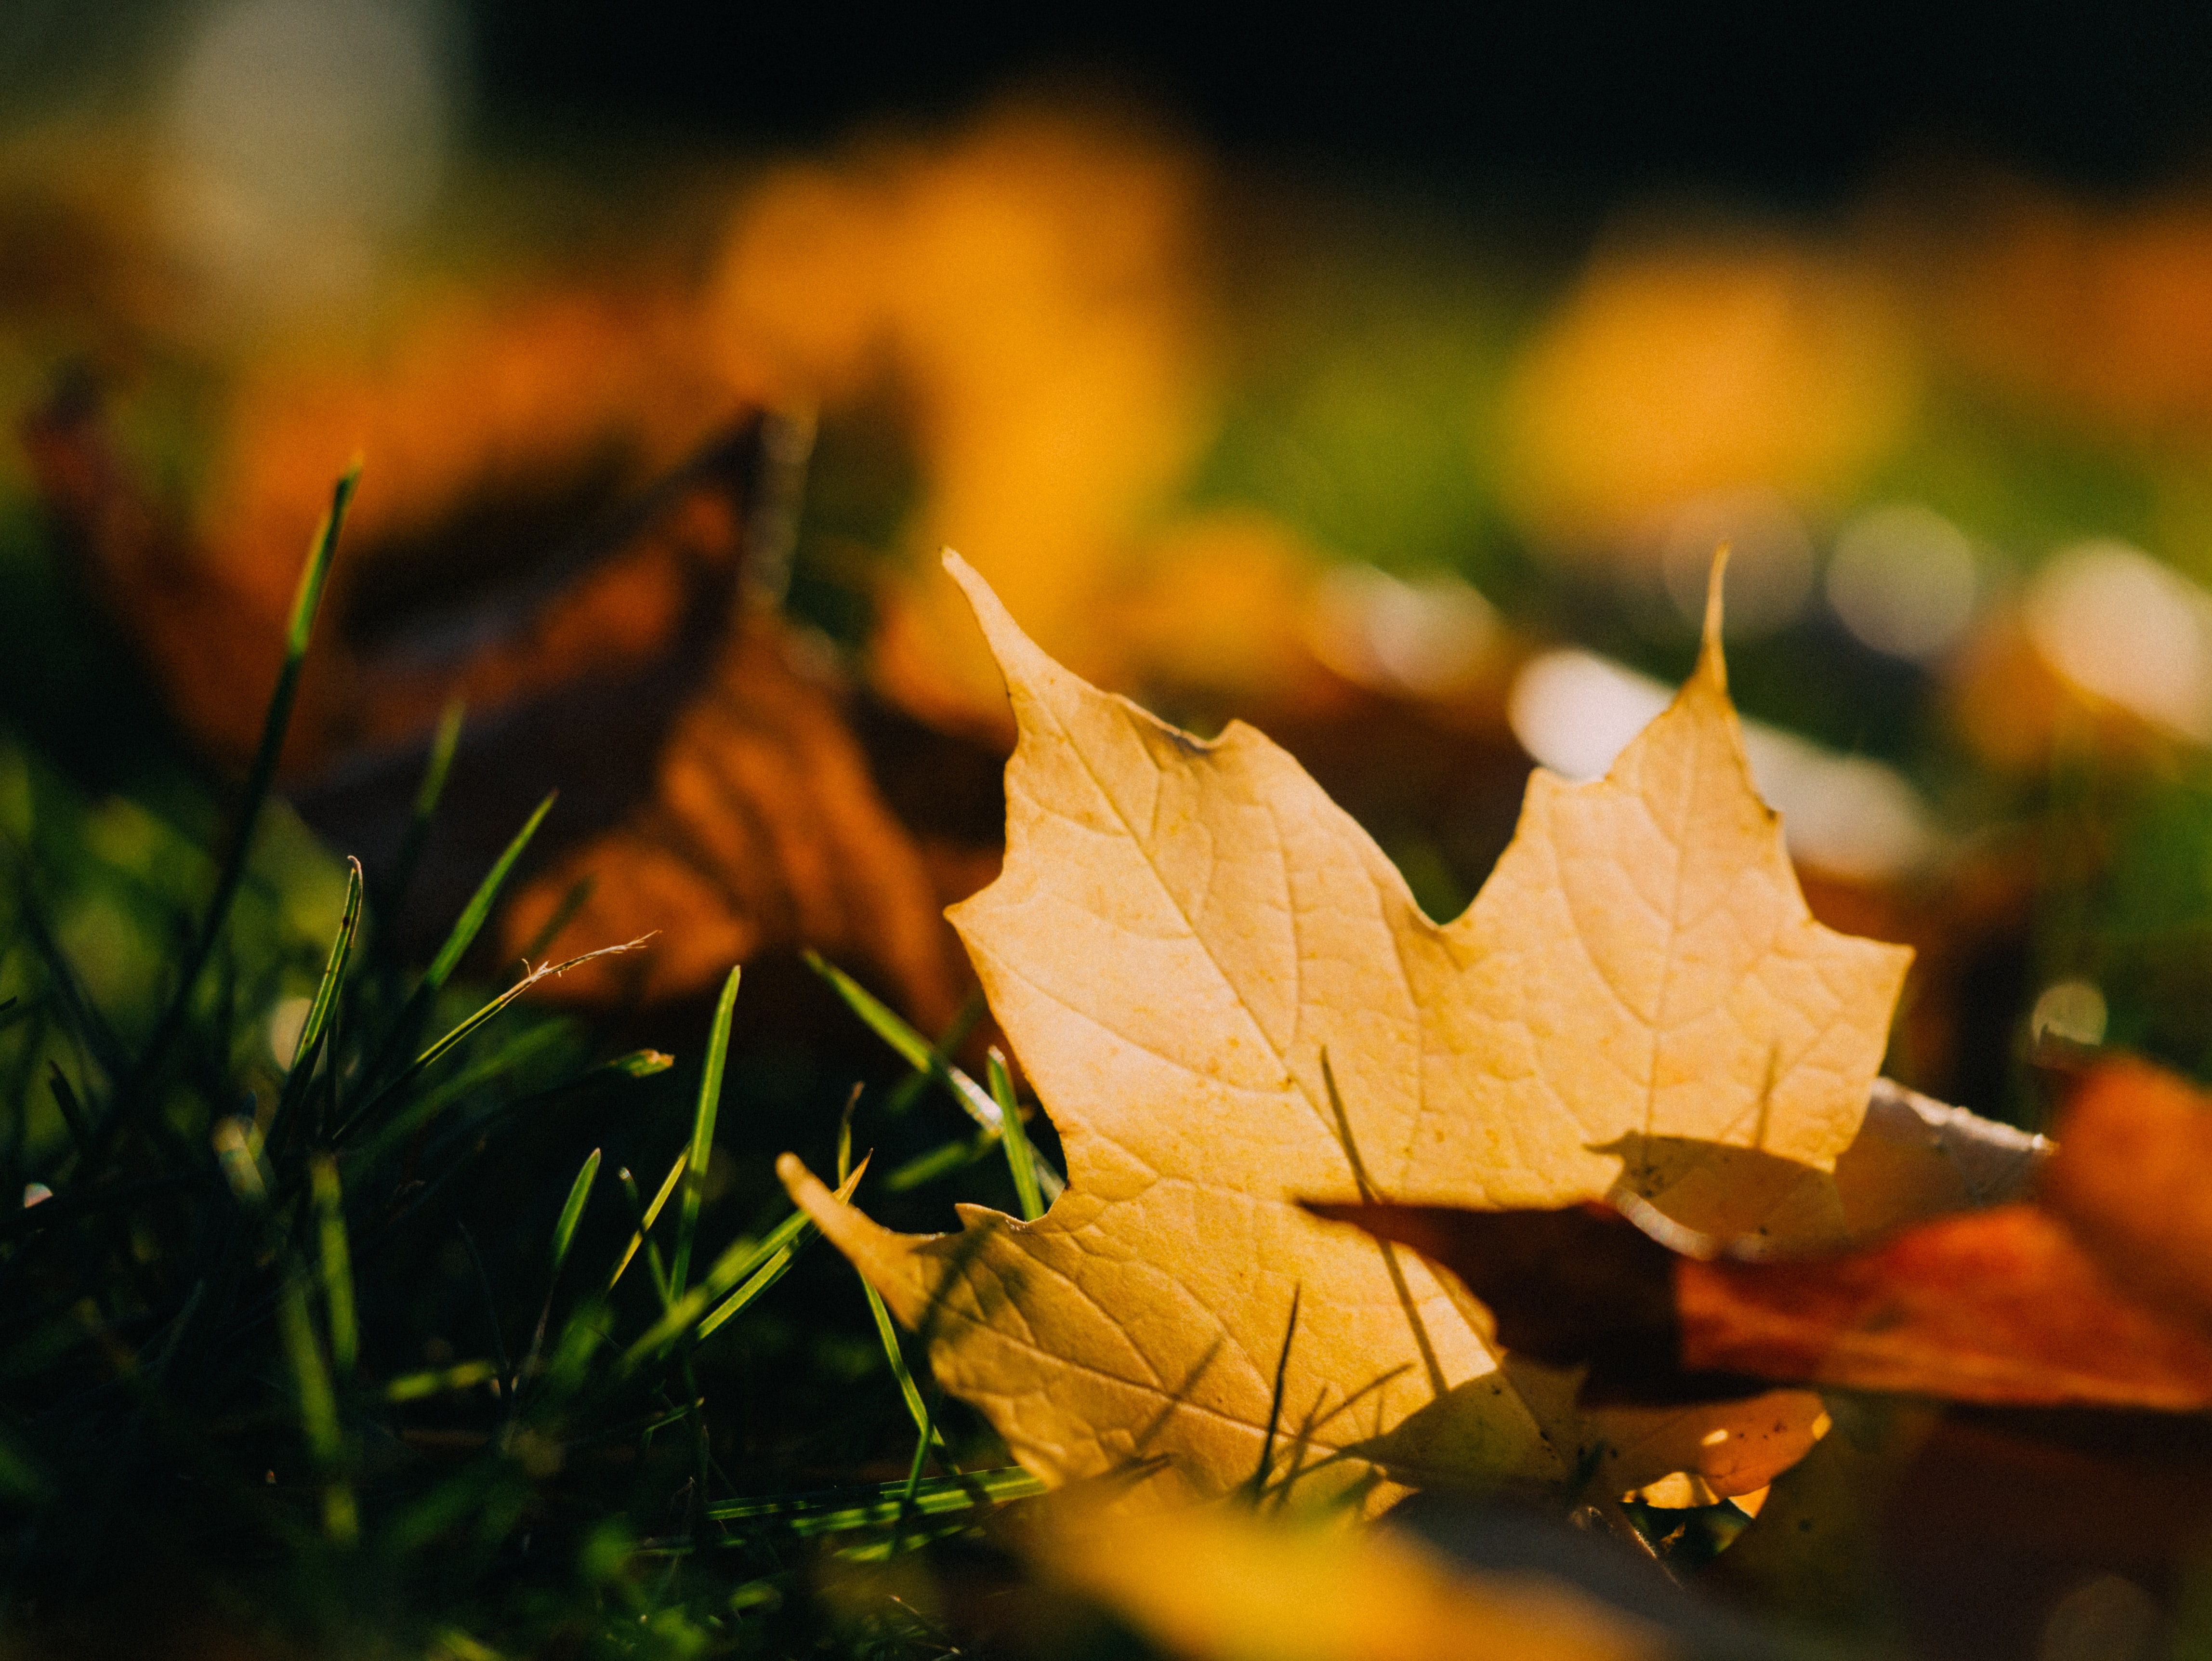 A yellow leaf in the grass.